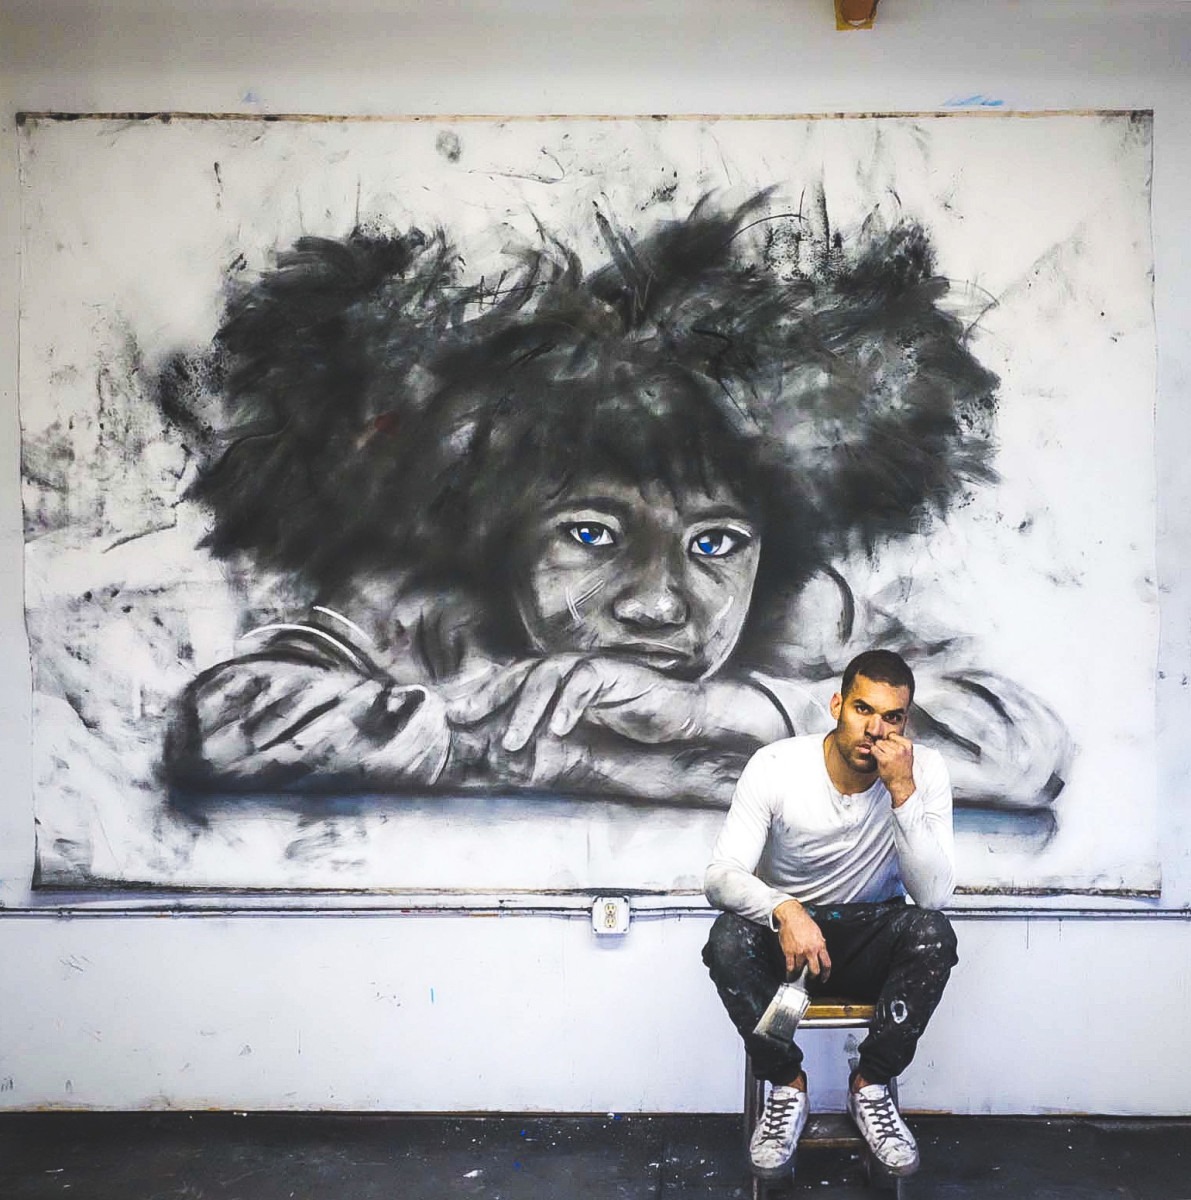 Micah Johnson wants Black children to see themselves in his art, and, through his characters, he hopes to inspire them todream without restraint.